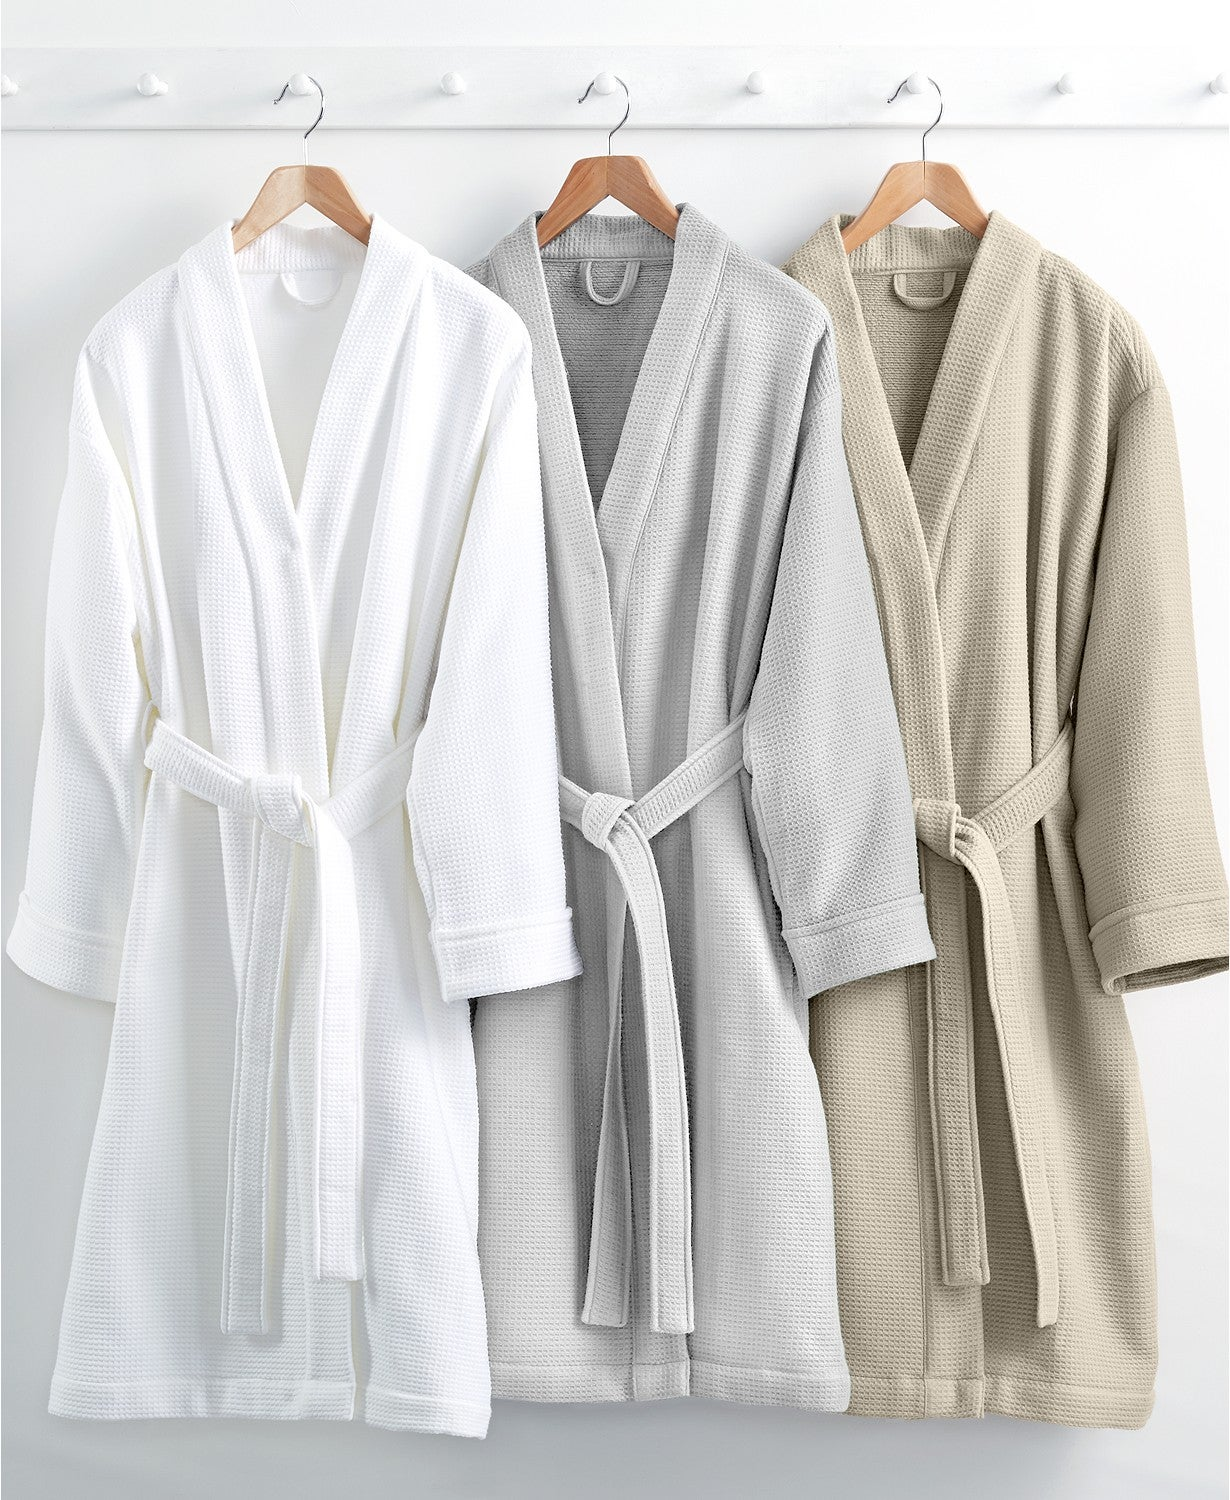 Macy's Hotel Collection Waffle Weave Robe